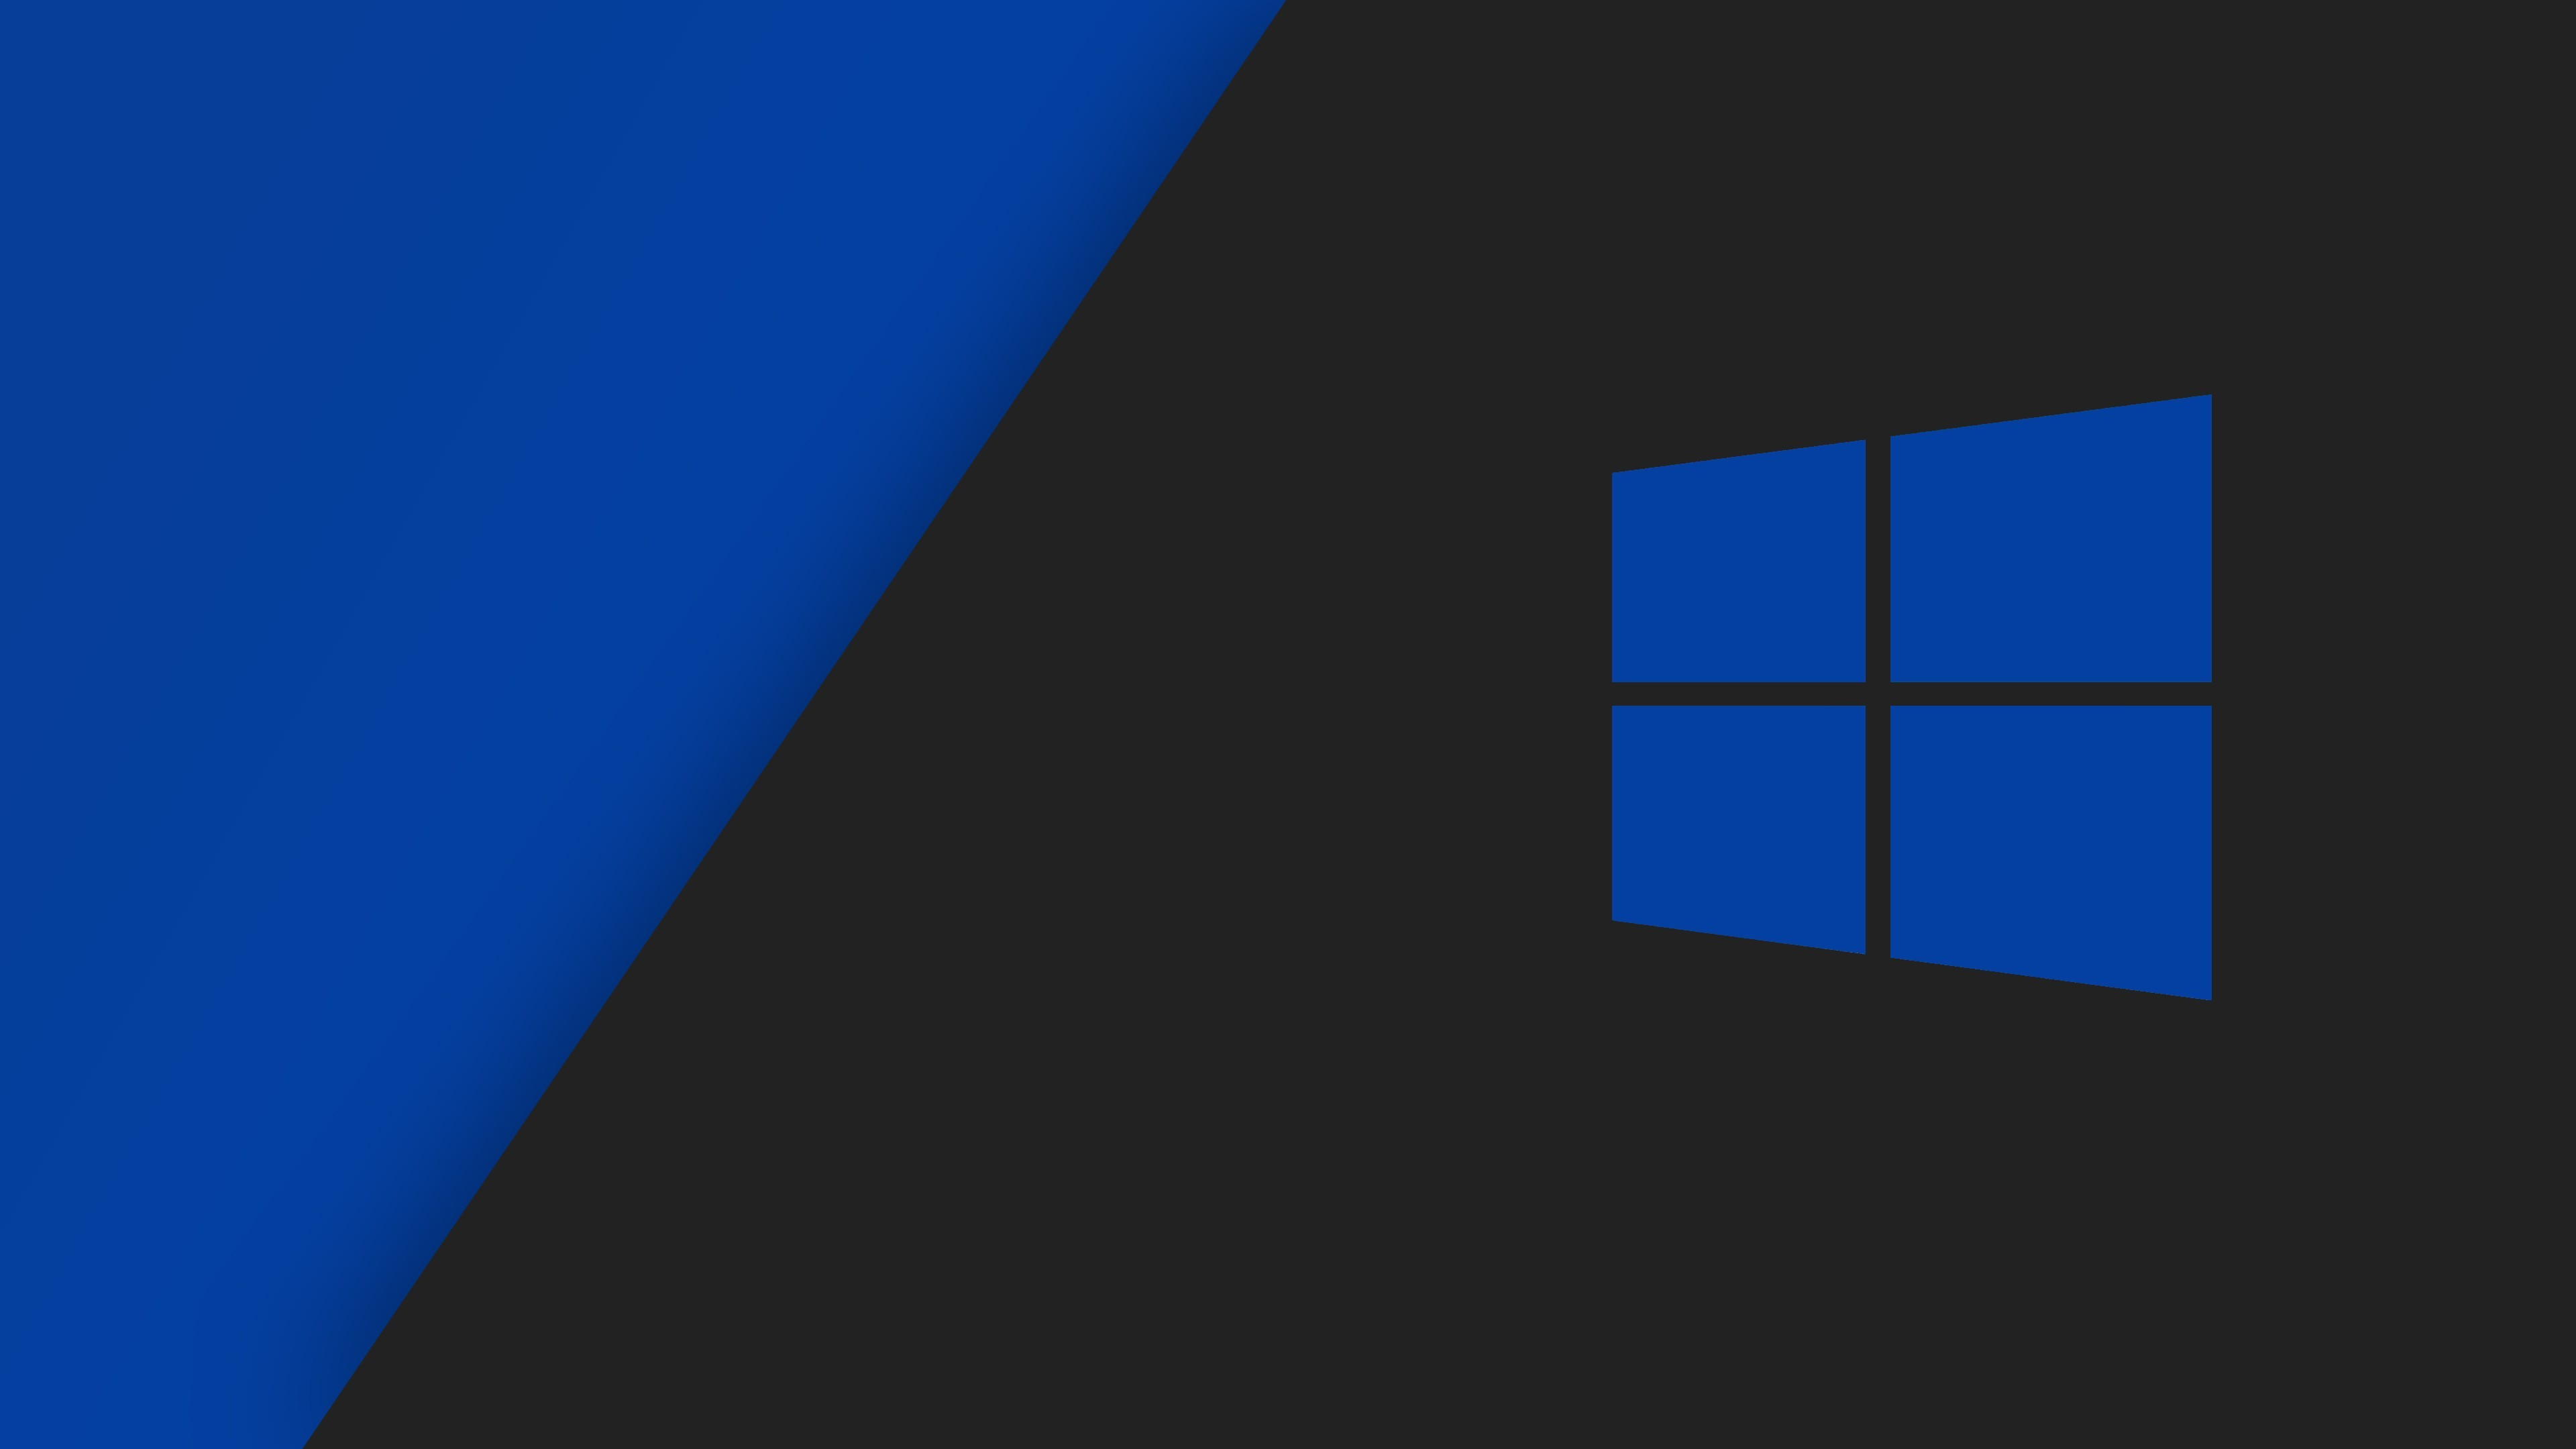 Windows 10 Mobile official Wallpapers 66 images